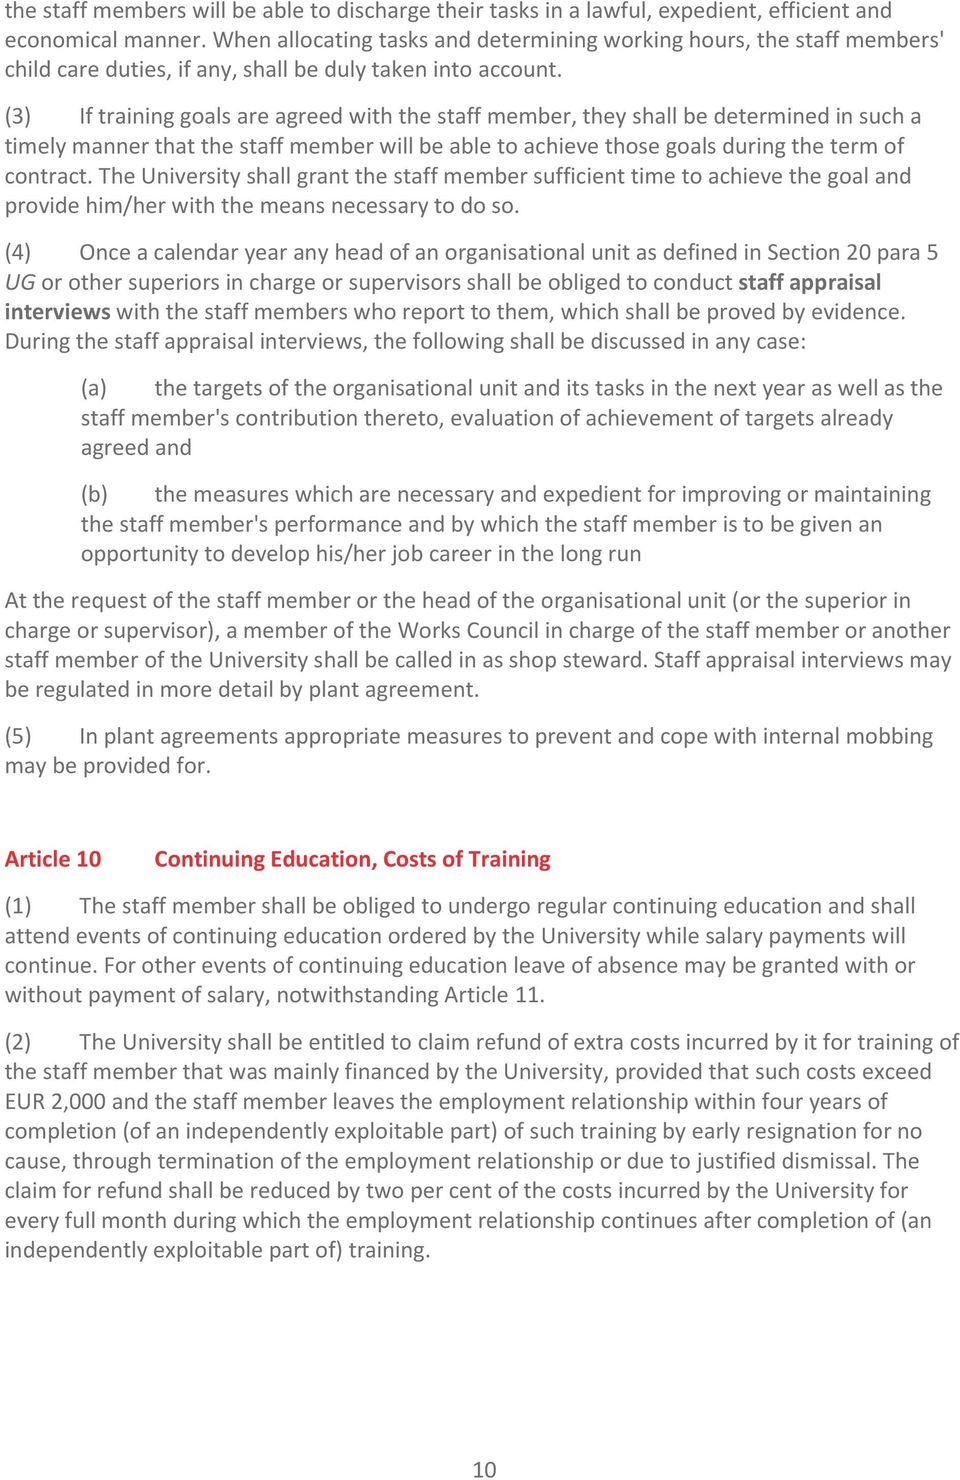 (3) If training goals are agreed with the staff member, they shall be determined in such a timely manner that the staff member will be able to achieve those goals during the term of contract.